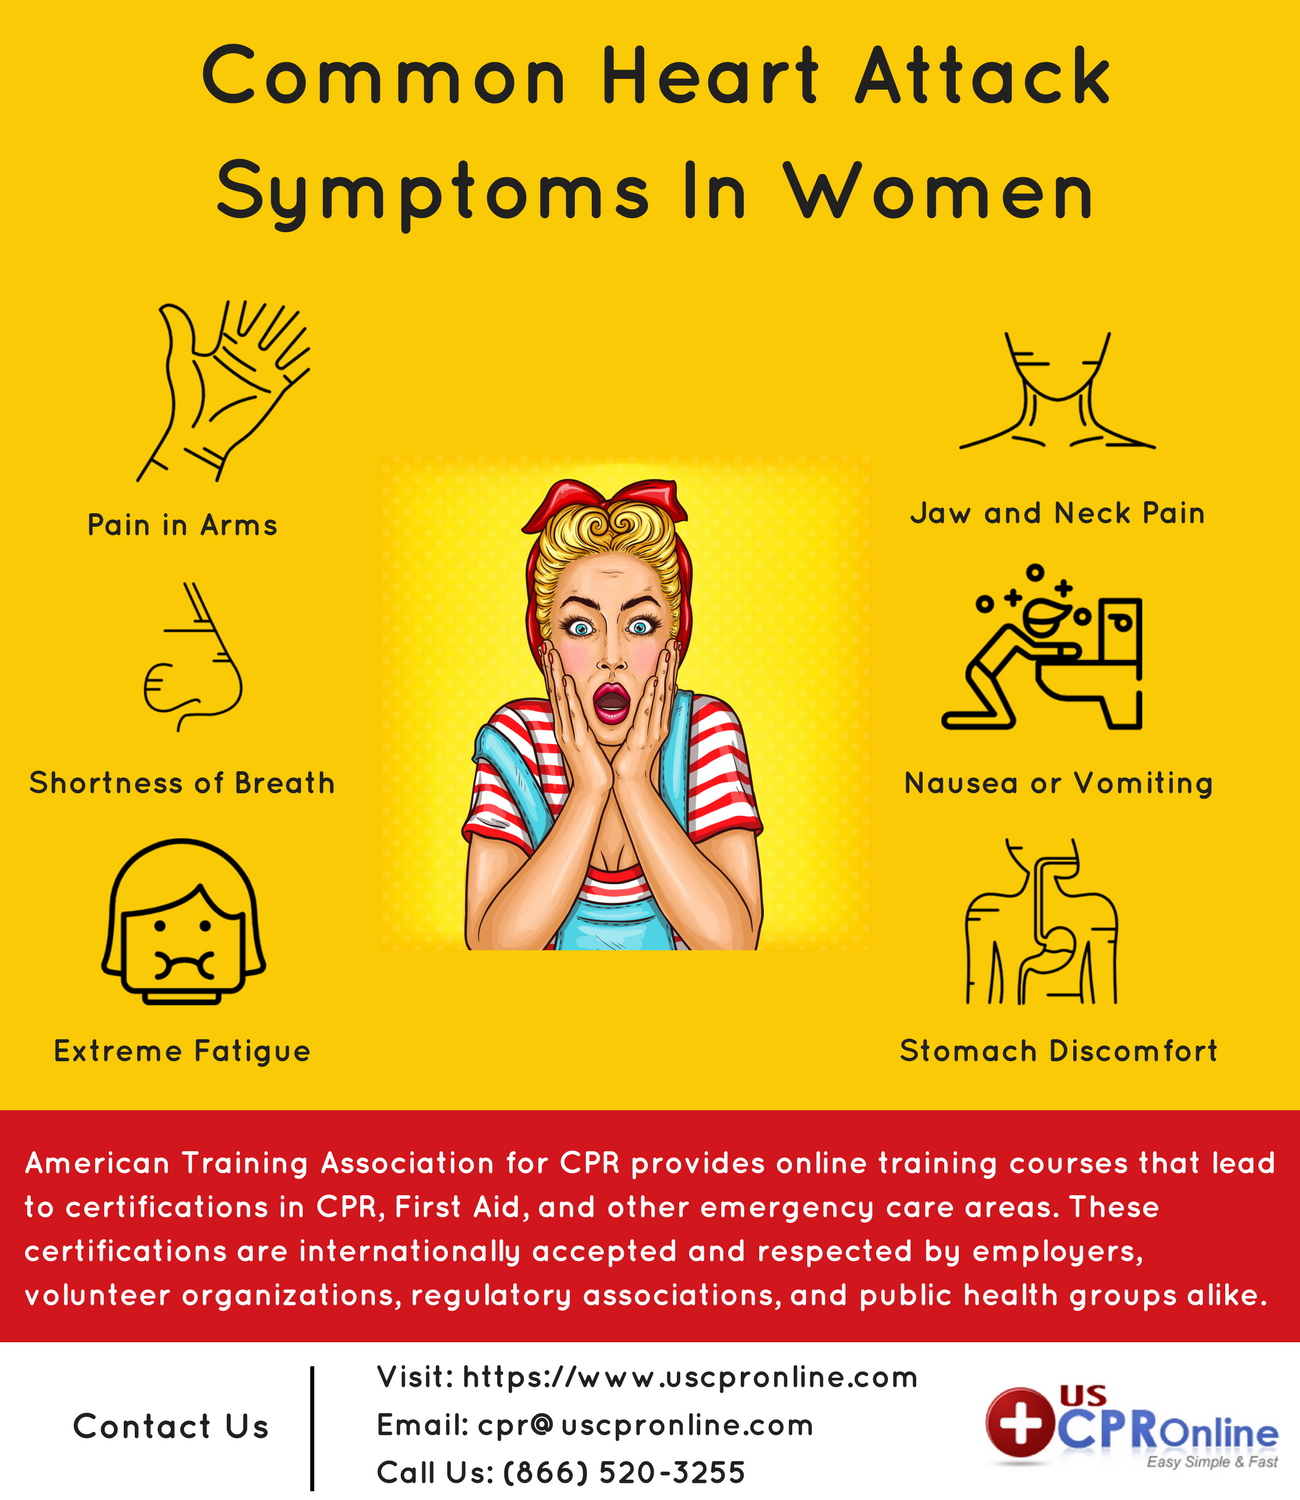 Check Out These Six Common Heart Attack Symptoms Common In Women To